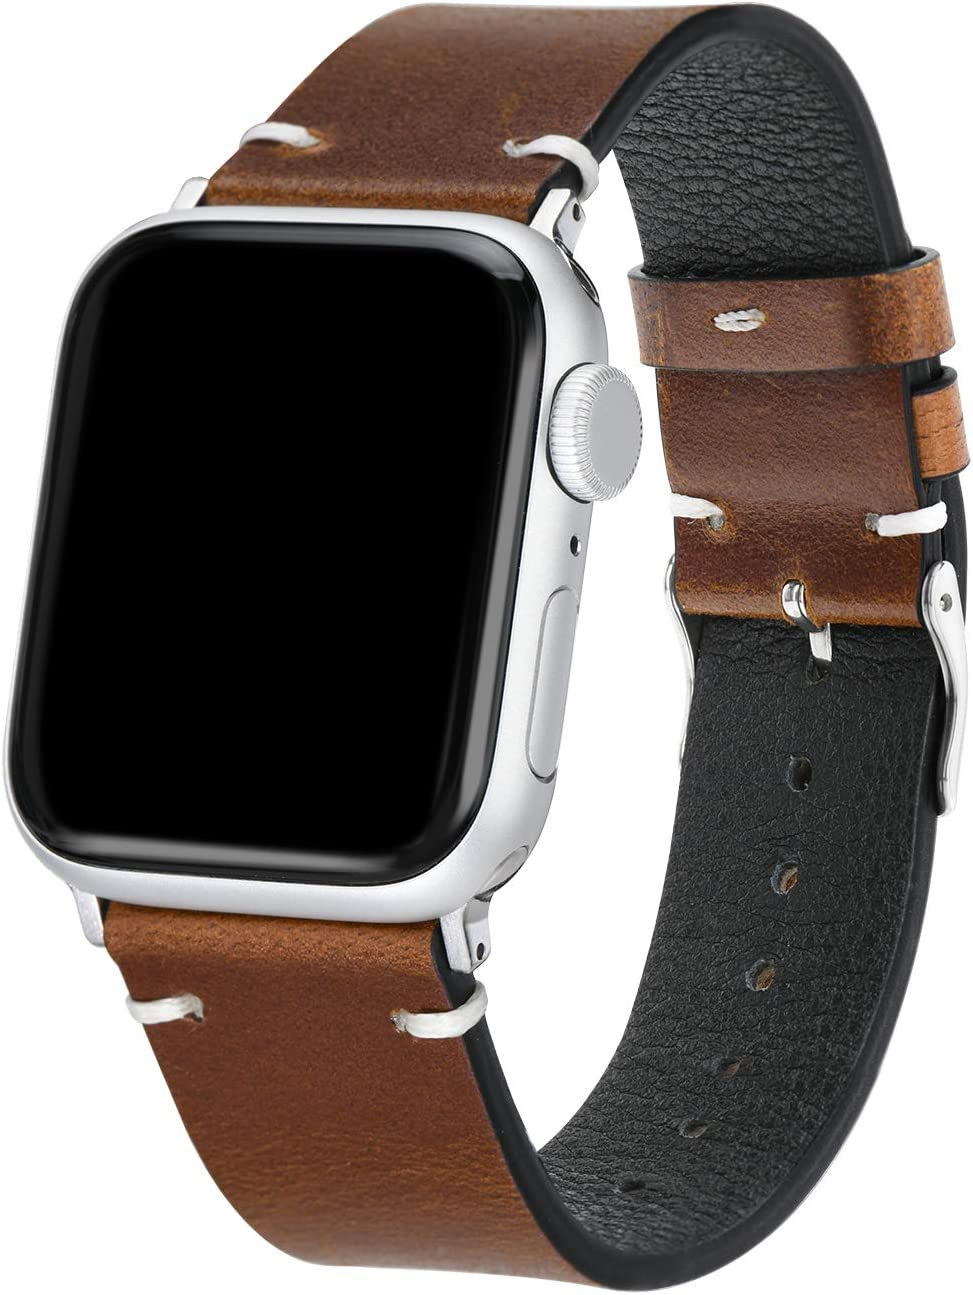 Ausimiet Leather Band Compatible with Apple Watch 38mm 40mm, Vintage Leather Replacement Wristband with Classic Clasp for iWatch Series SE 6 5 4 3 2 1